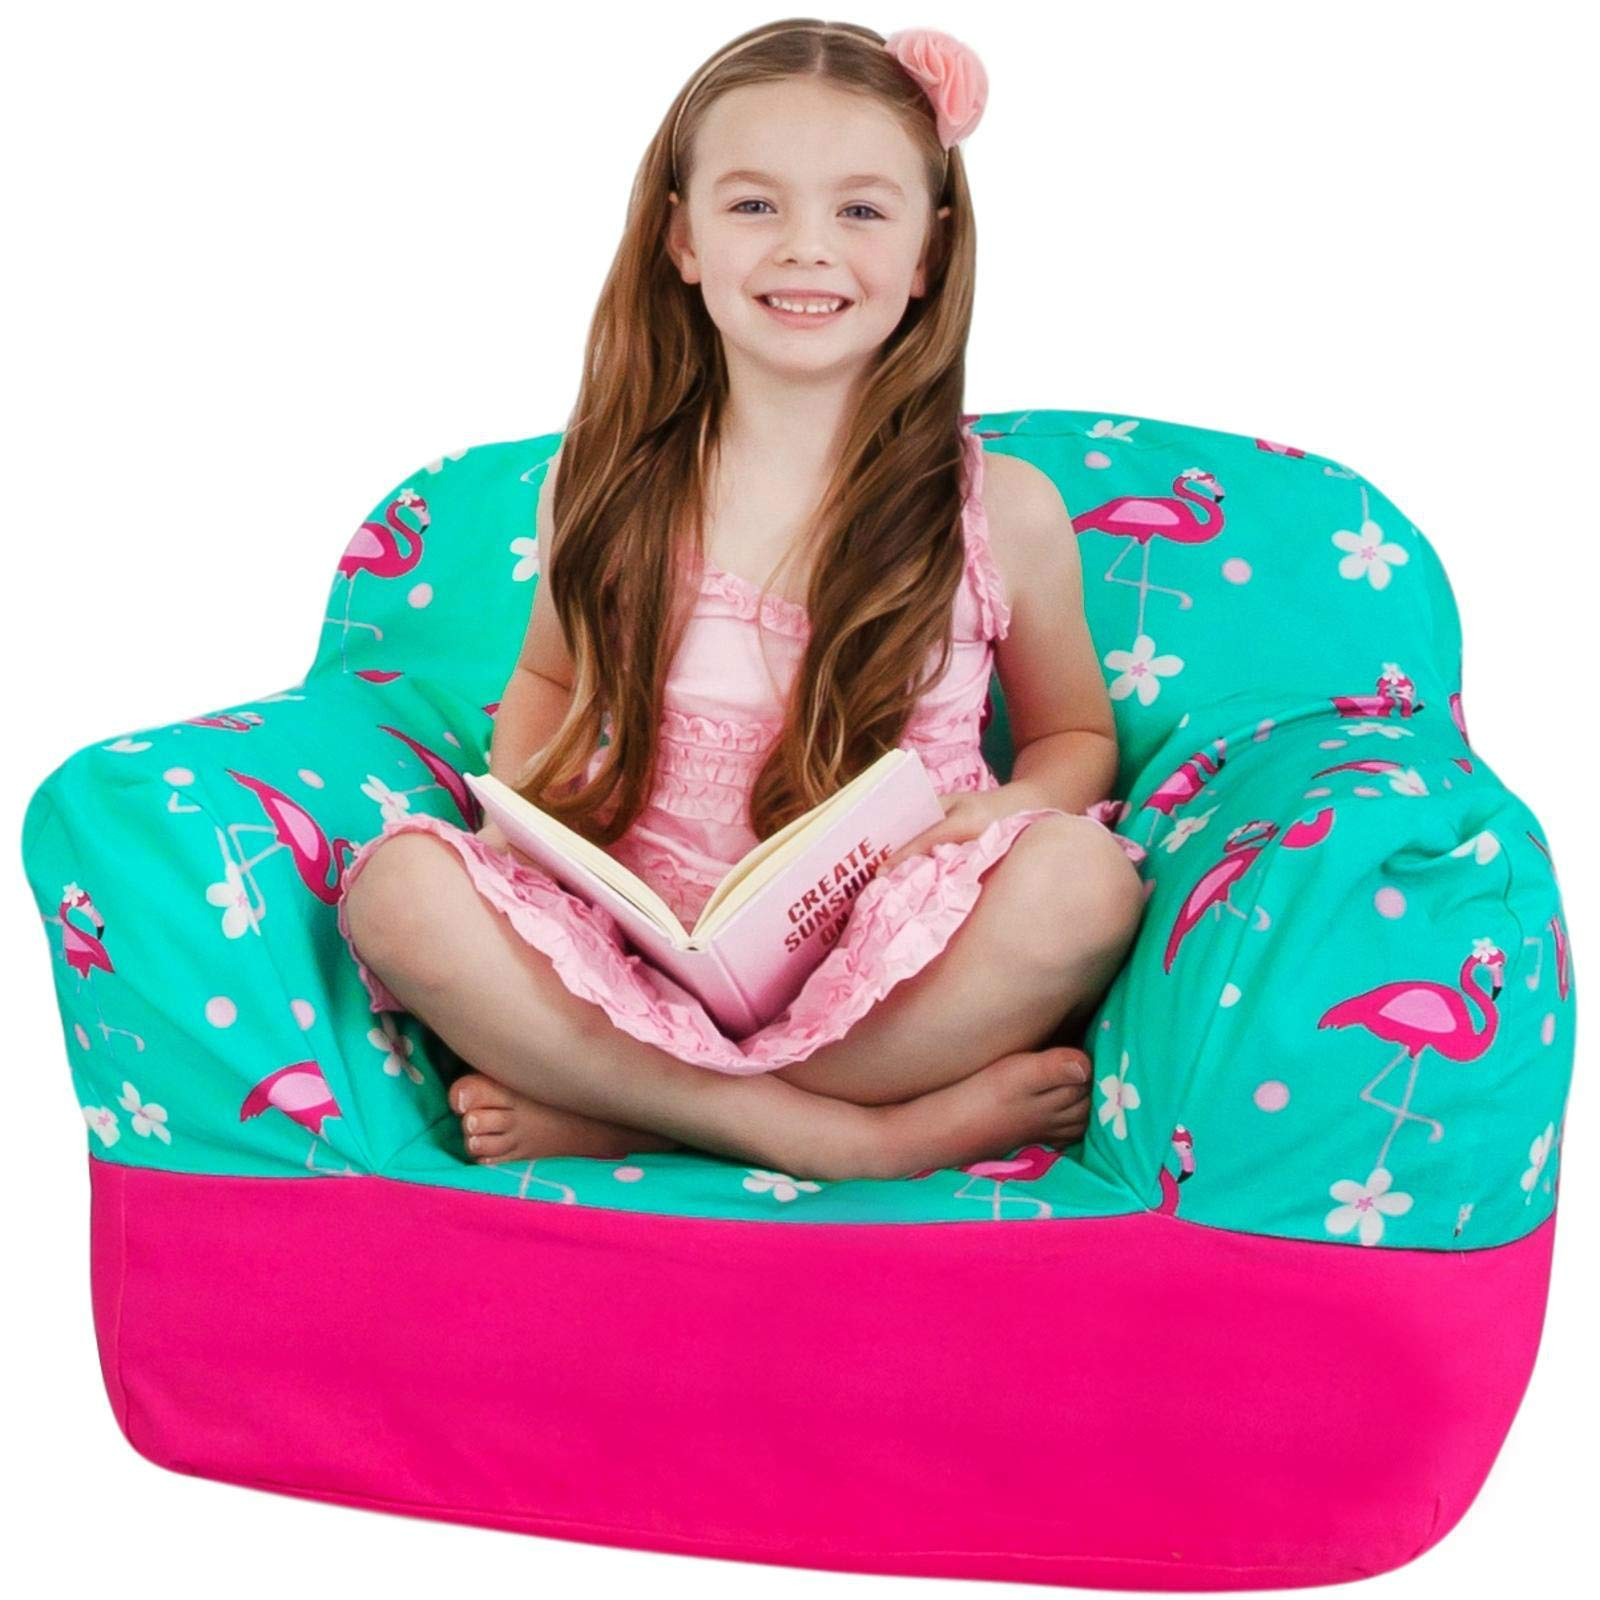 Yayme! Pink Flamingo Beanbag Chair Cover | Our Bean Bag for Girls is Comfy and Shaped Like an Armchair | This Cute Design Will Make Every Princess's Room Look Pretty While Reading or Watching TV